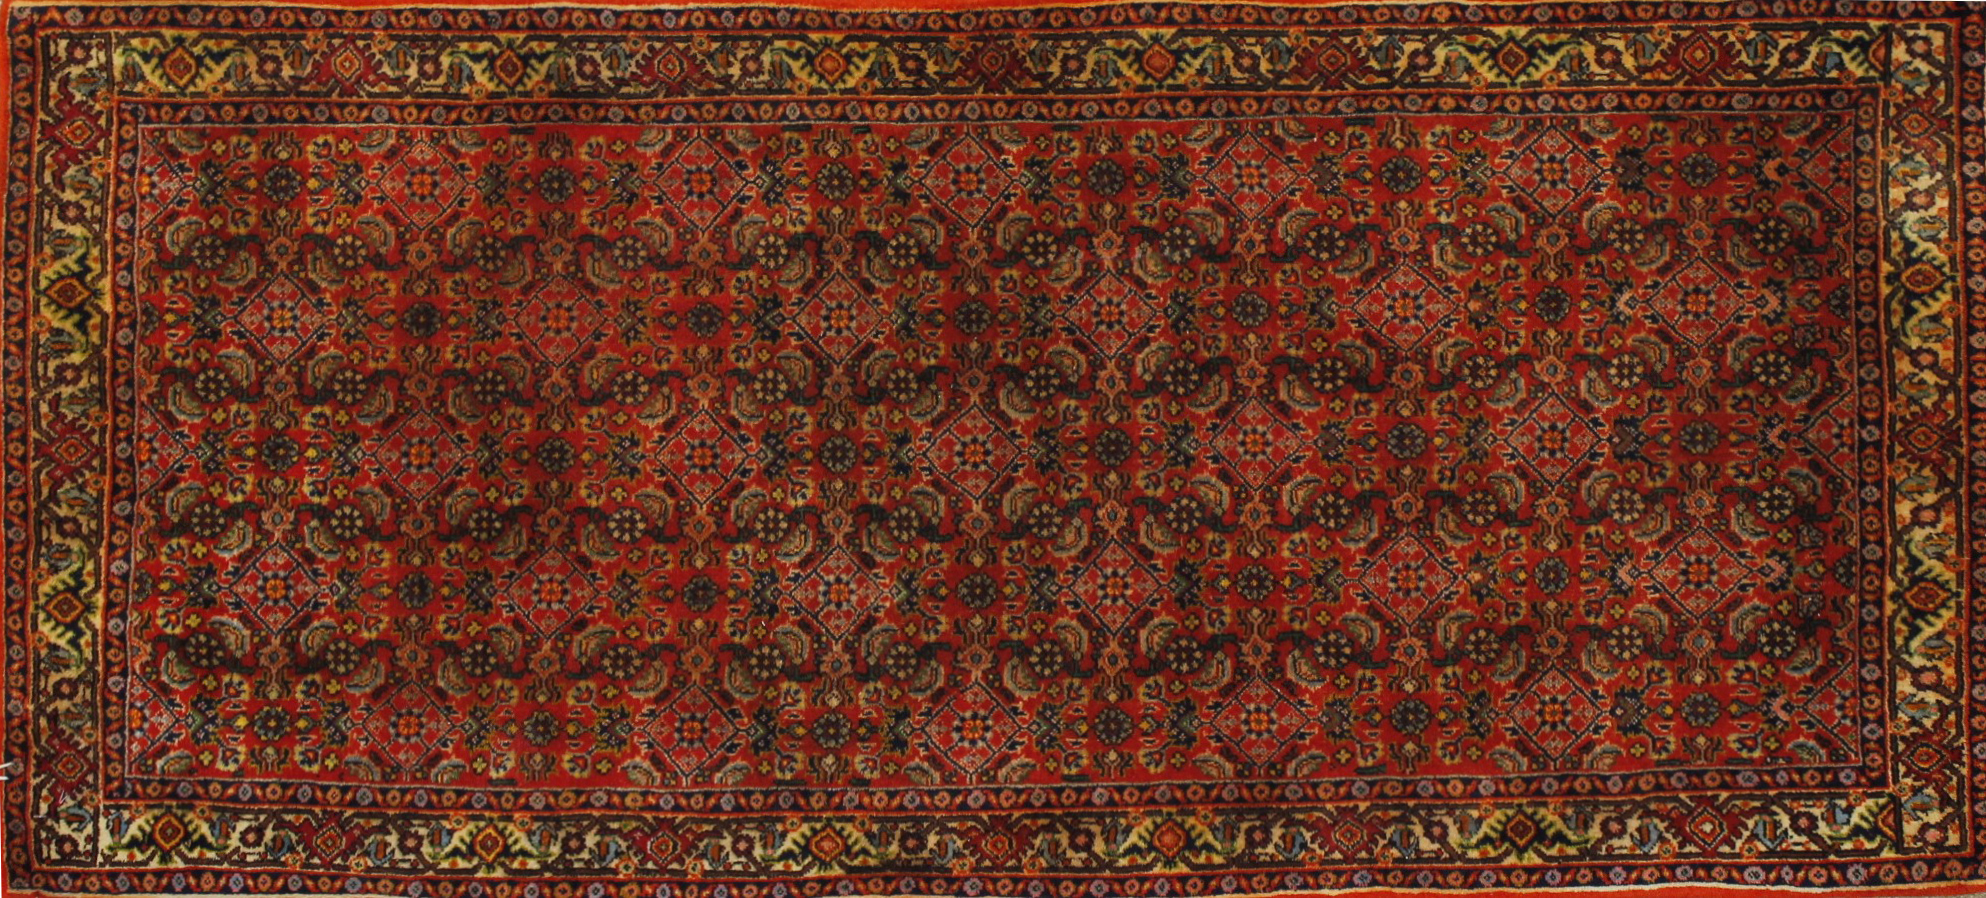 2X4 Floral Hand Knotted Wool Area Rug - MR021313